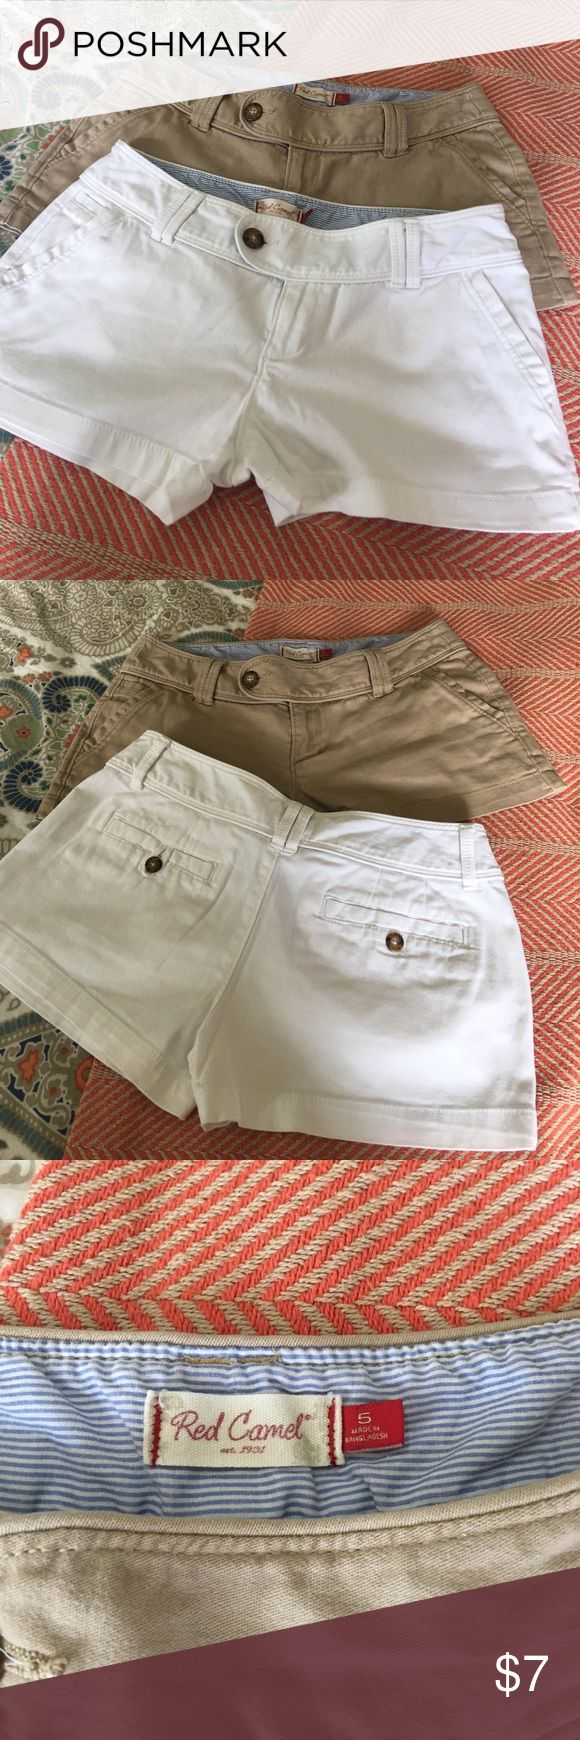 2 pairs Red Camel shorts 2 pairs Red Camel shorts. Great condition! Size 5 2.5 inch inseam Red Camel Shorts